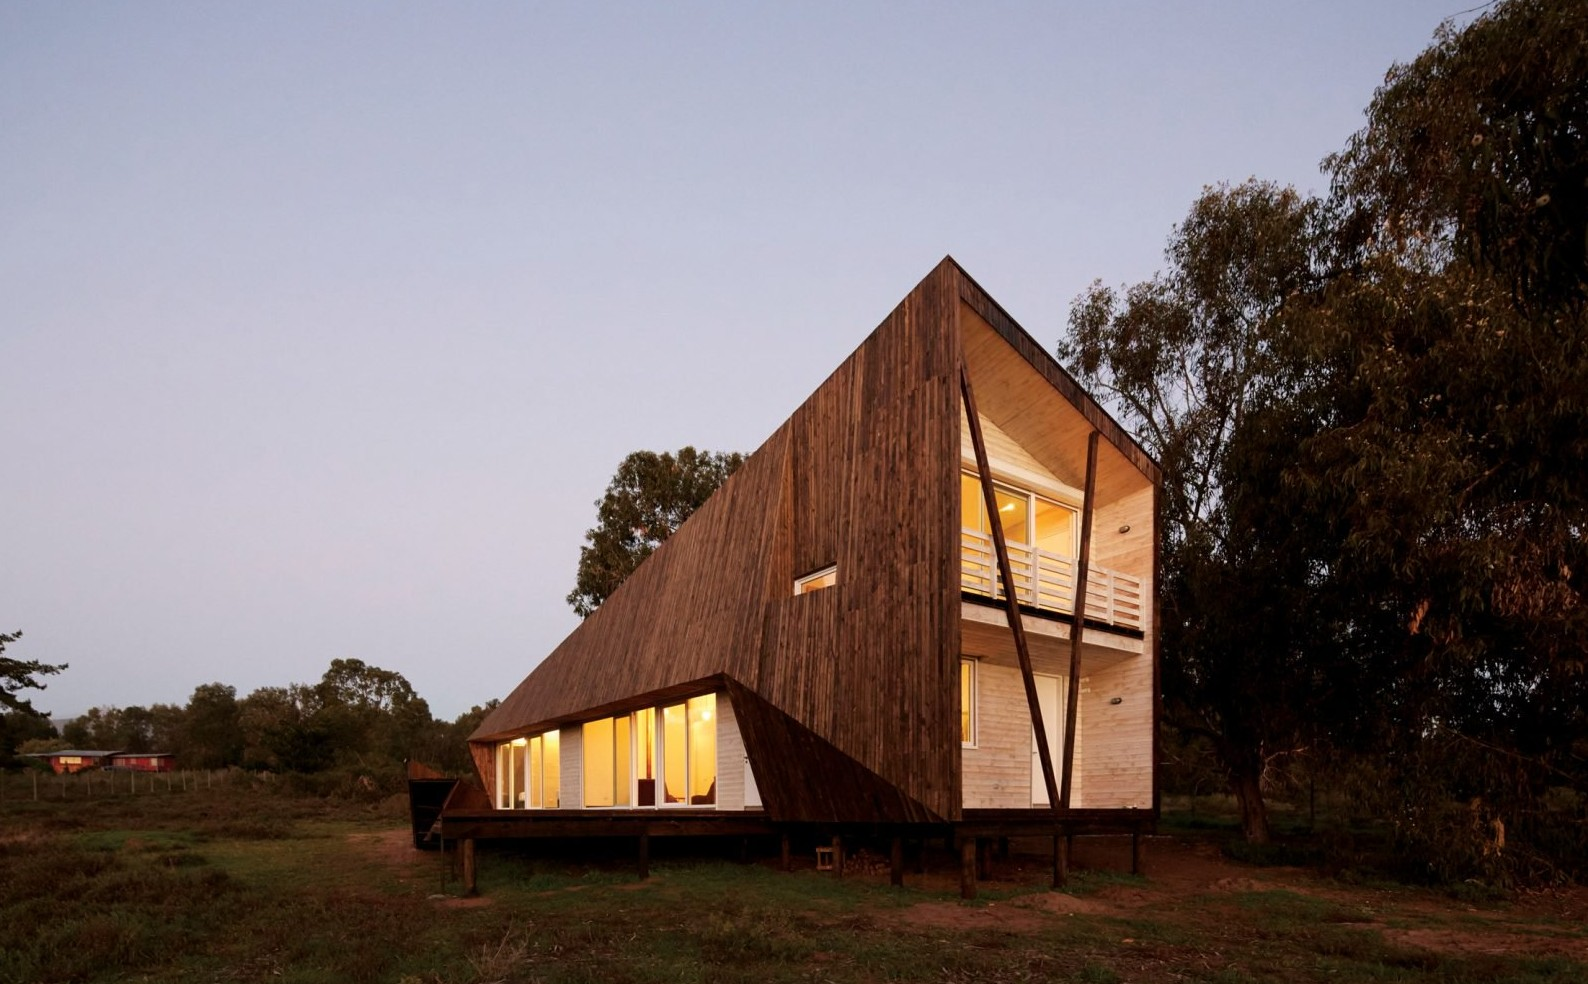 two-skins-house-veronica-arcos-huaquen-del-mar-condominium-chile_dezeen_2364_col_21-1704x1136